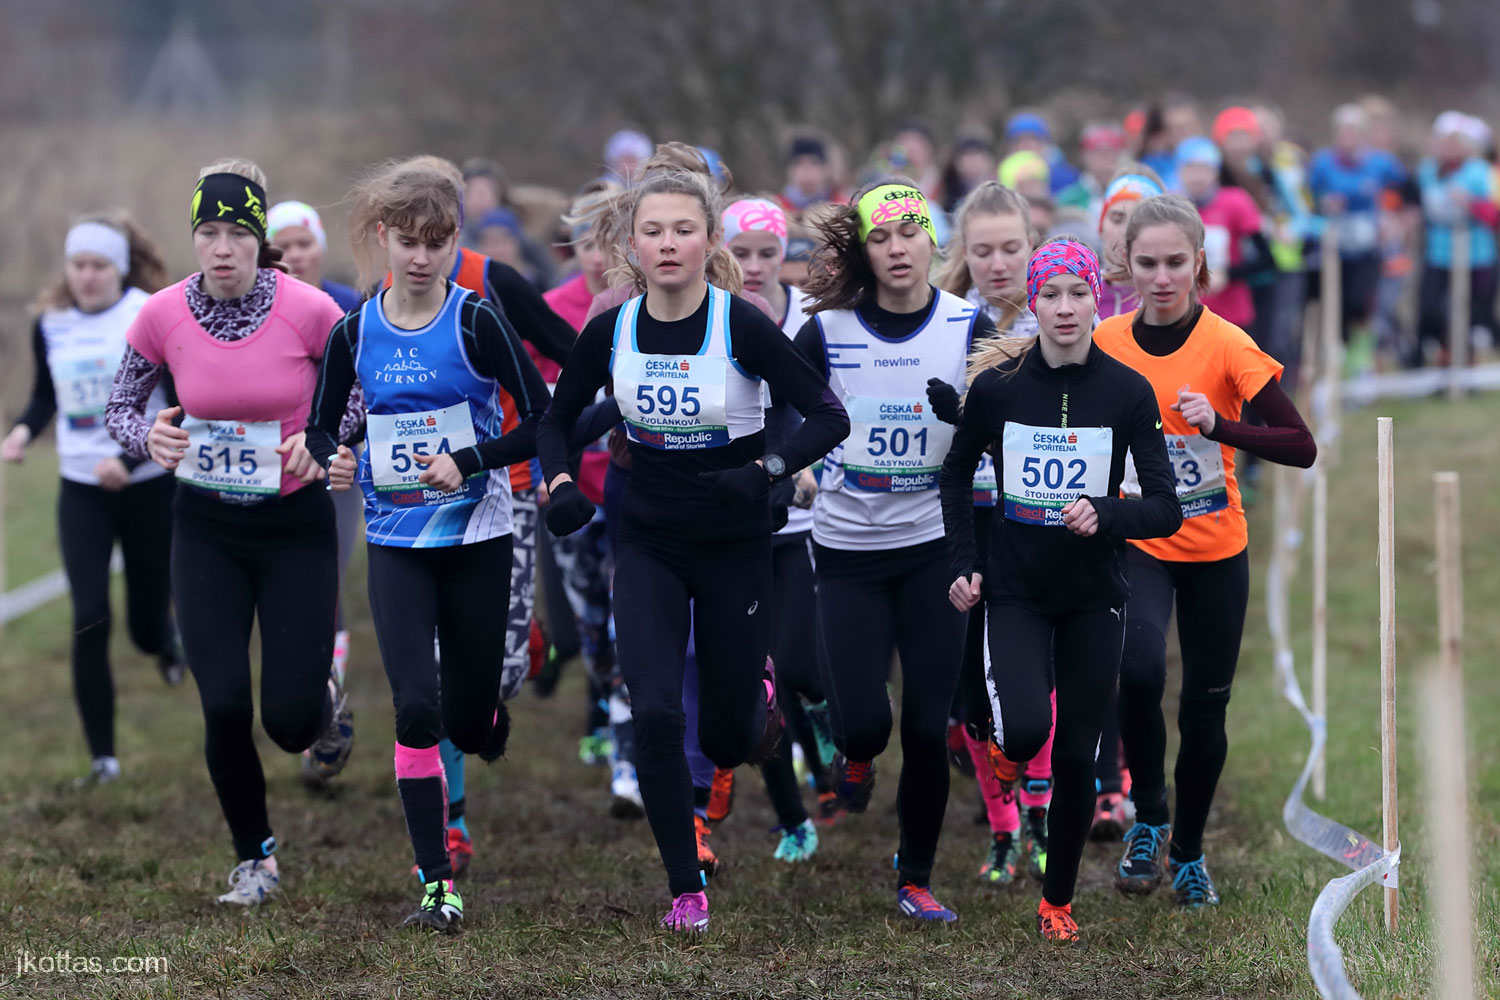 cz-championship-cross-country-dlouhonovice-05